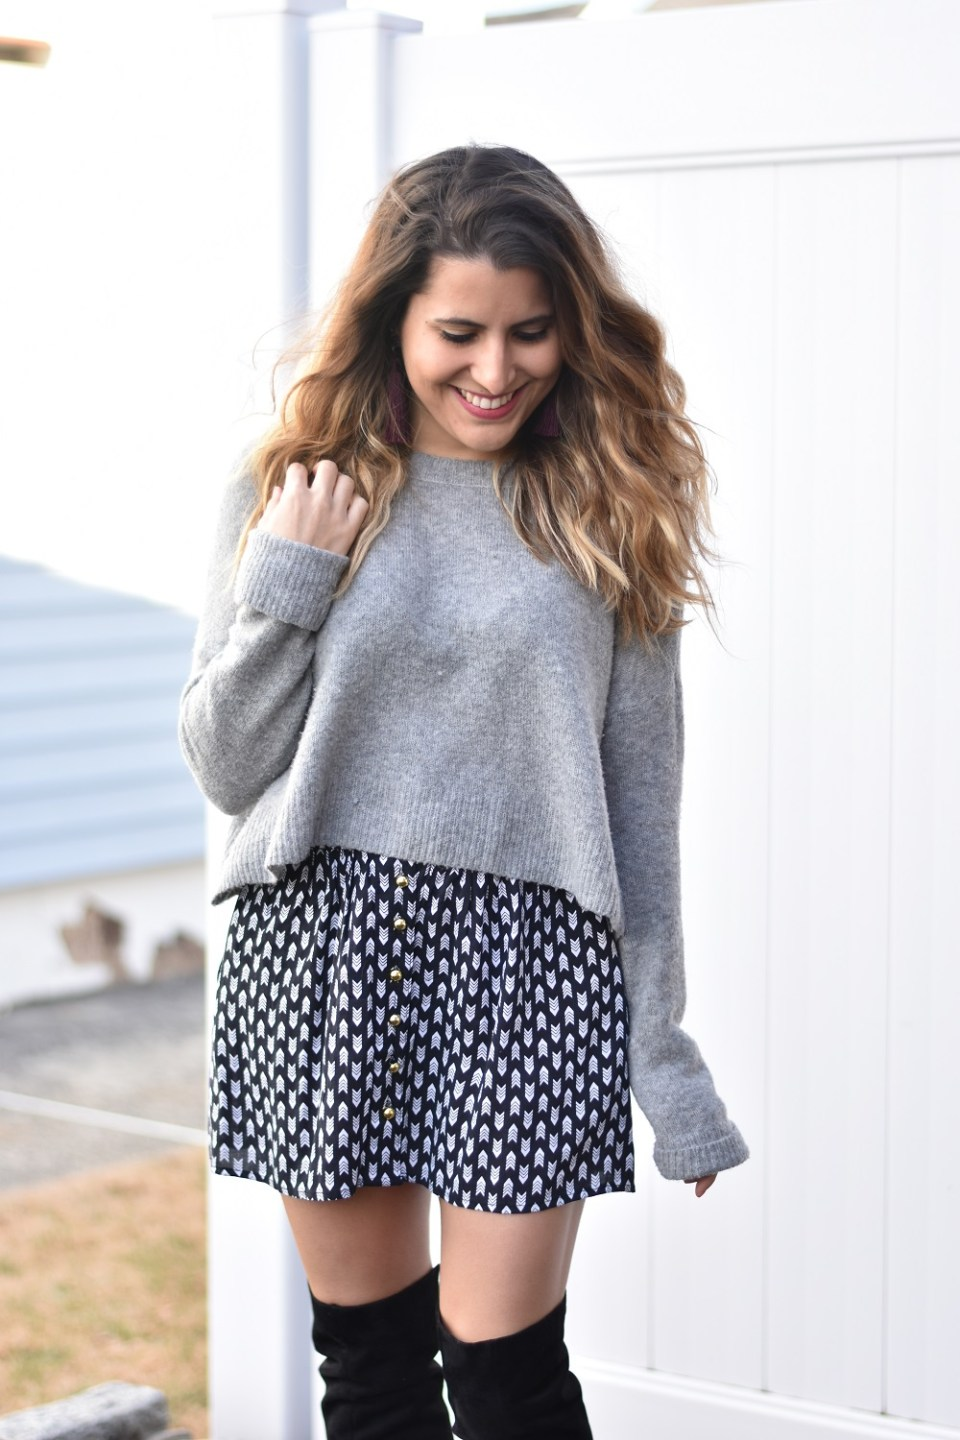 Cropped Sweaters & Short Skirts